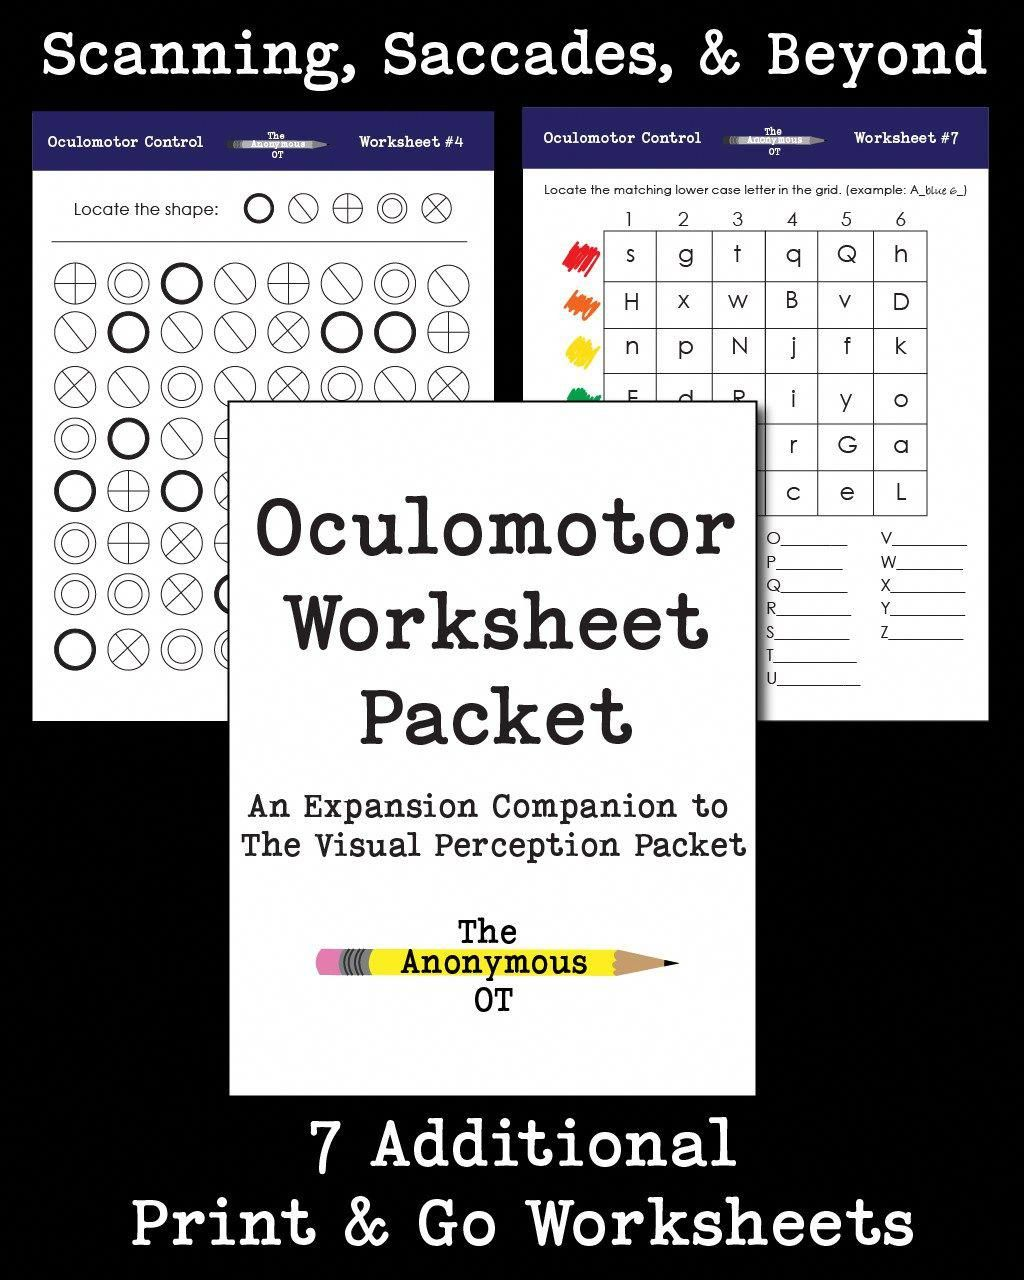 The Oculomotor Worksheet Packet